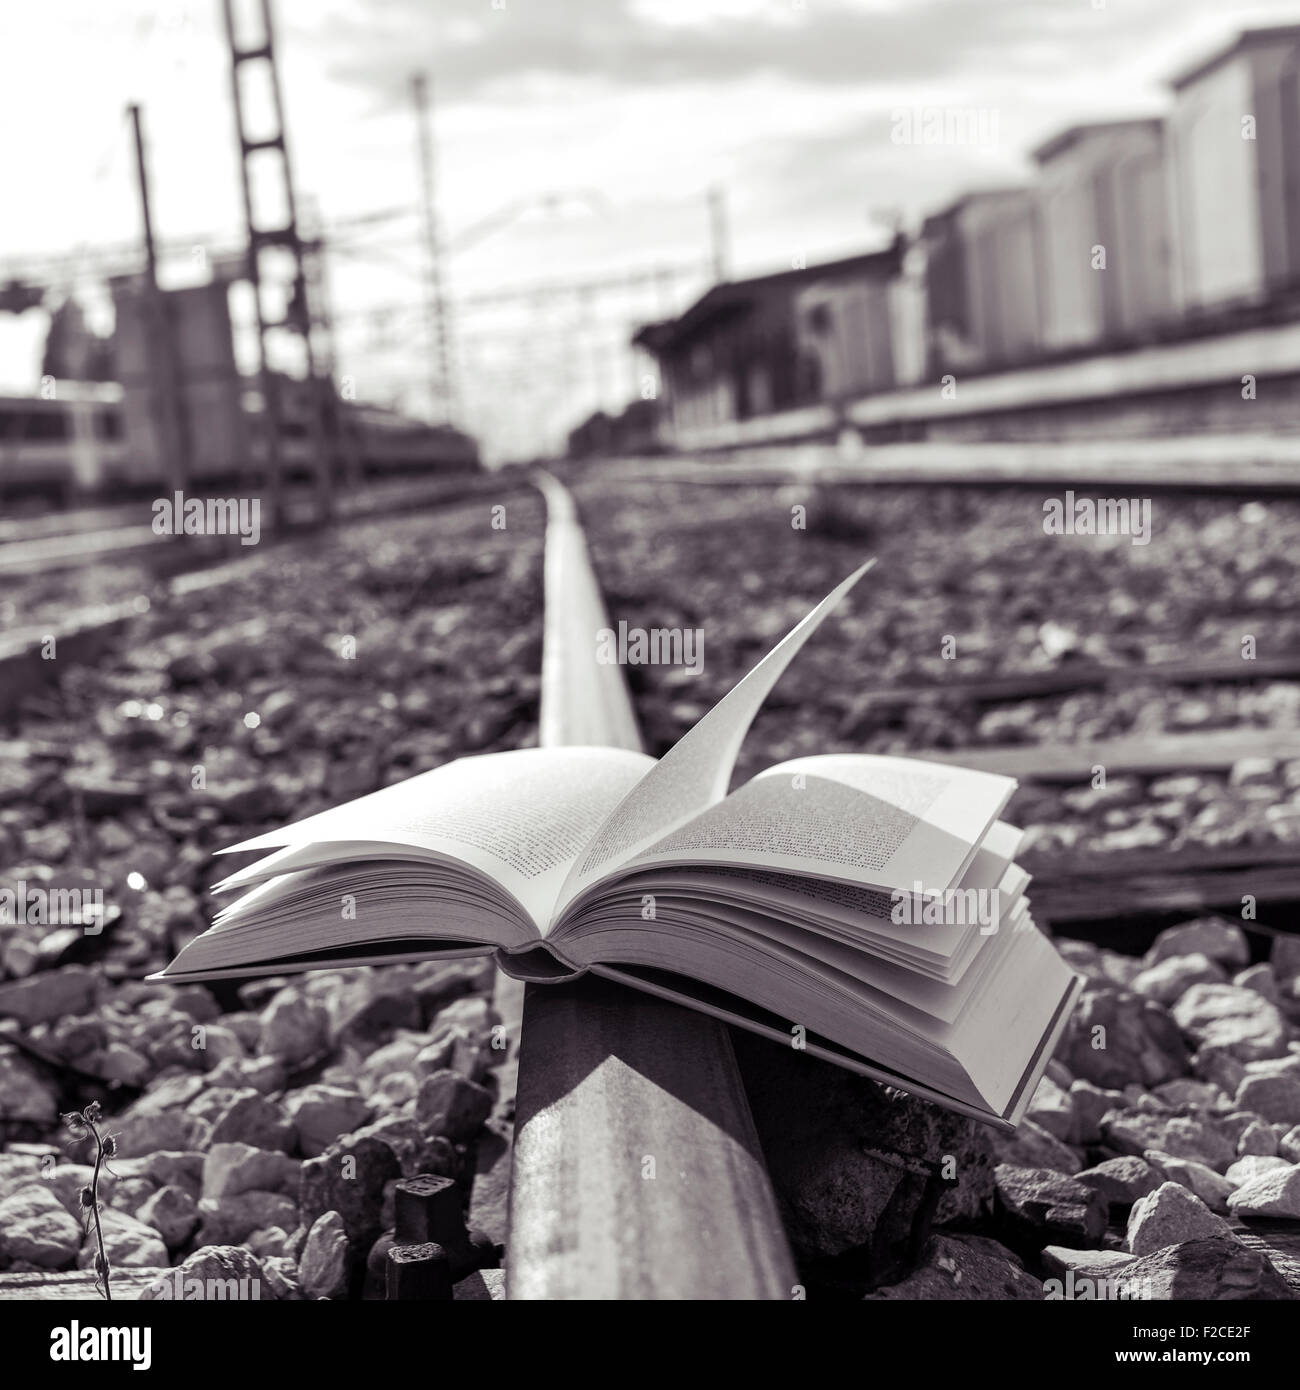 closeup of an open book on the railroad tracks, in black and white - Stock Image